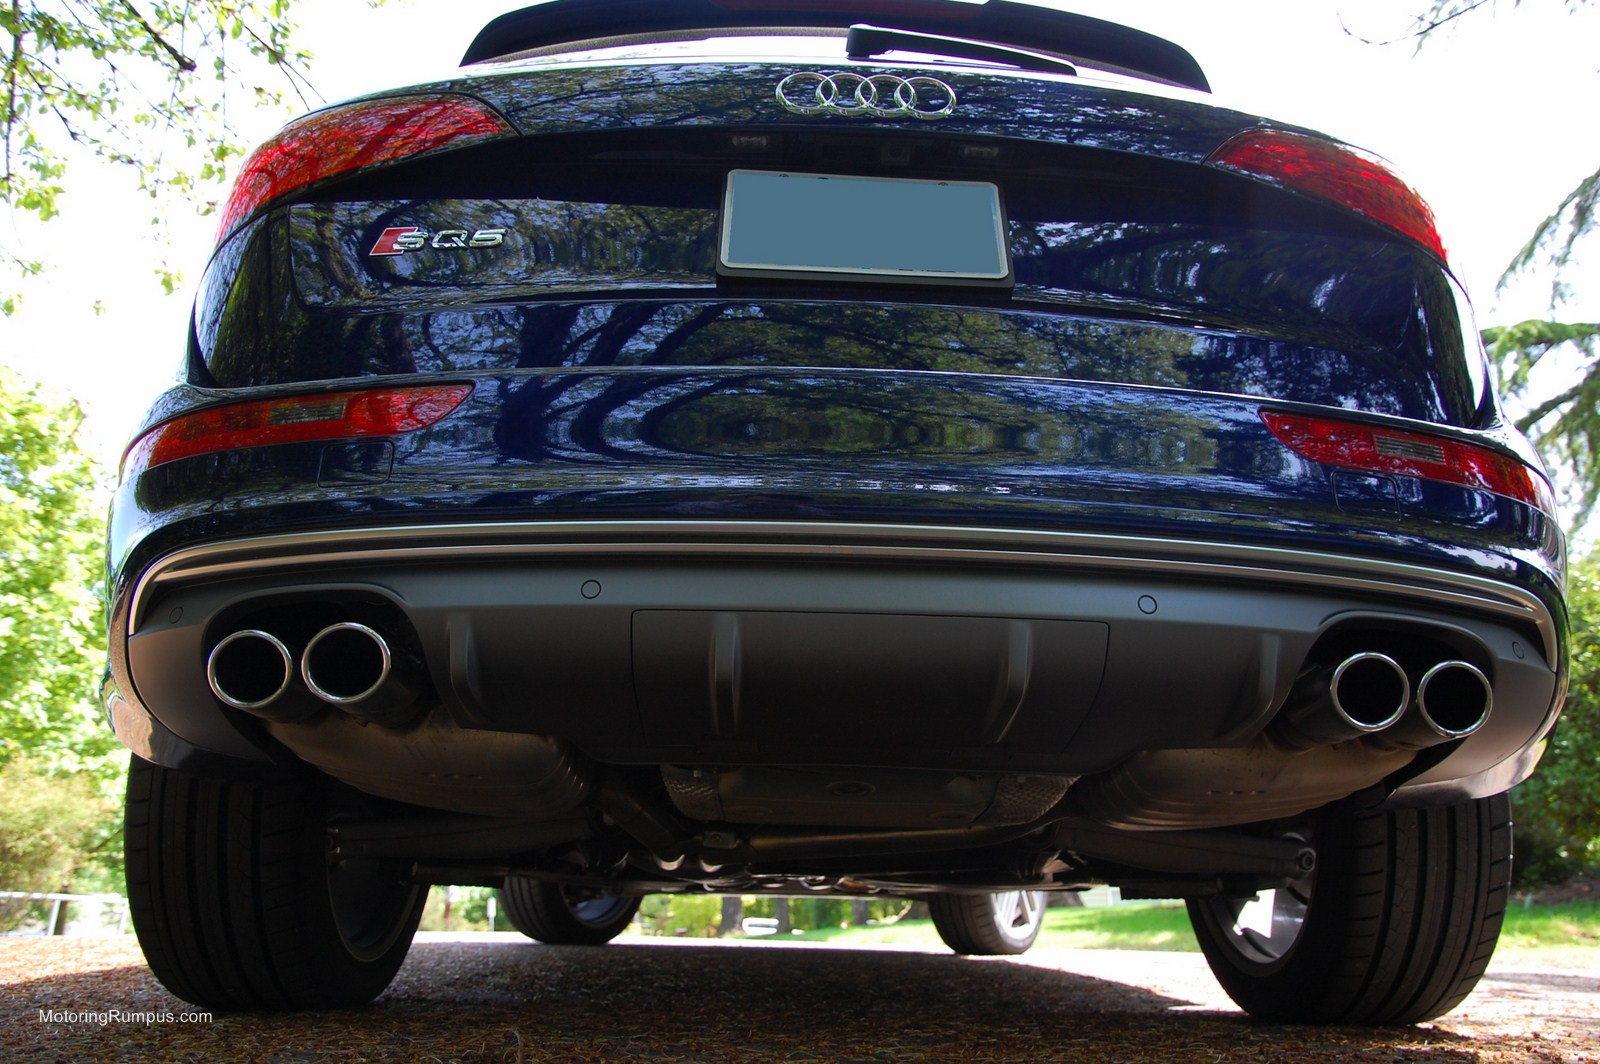 Audi Takes The Fake Exhaust Tips To A New Level With The